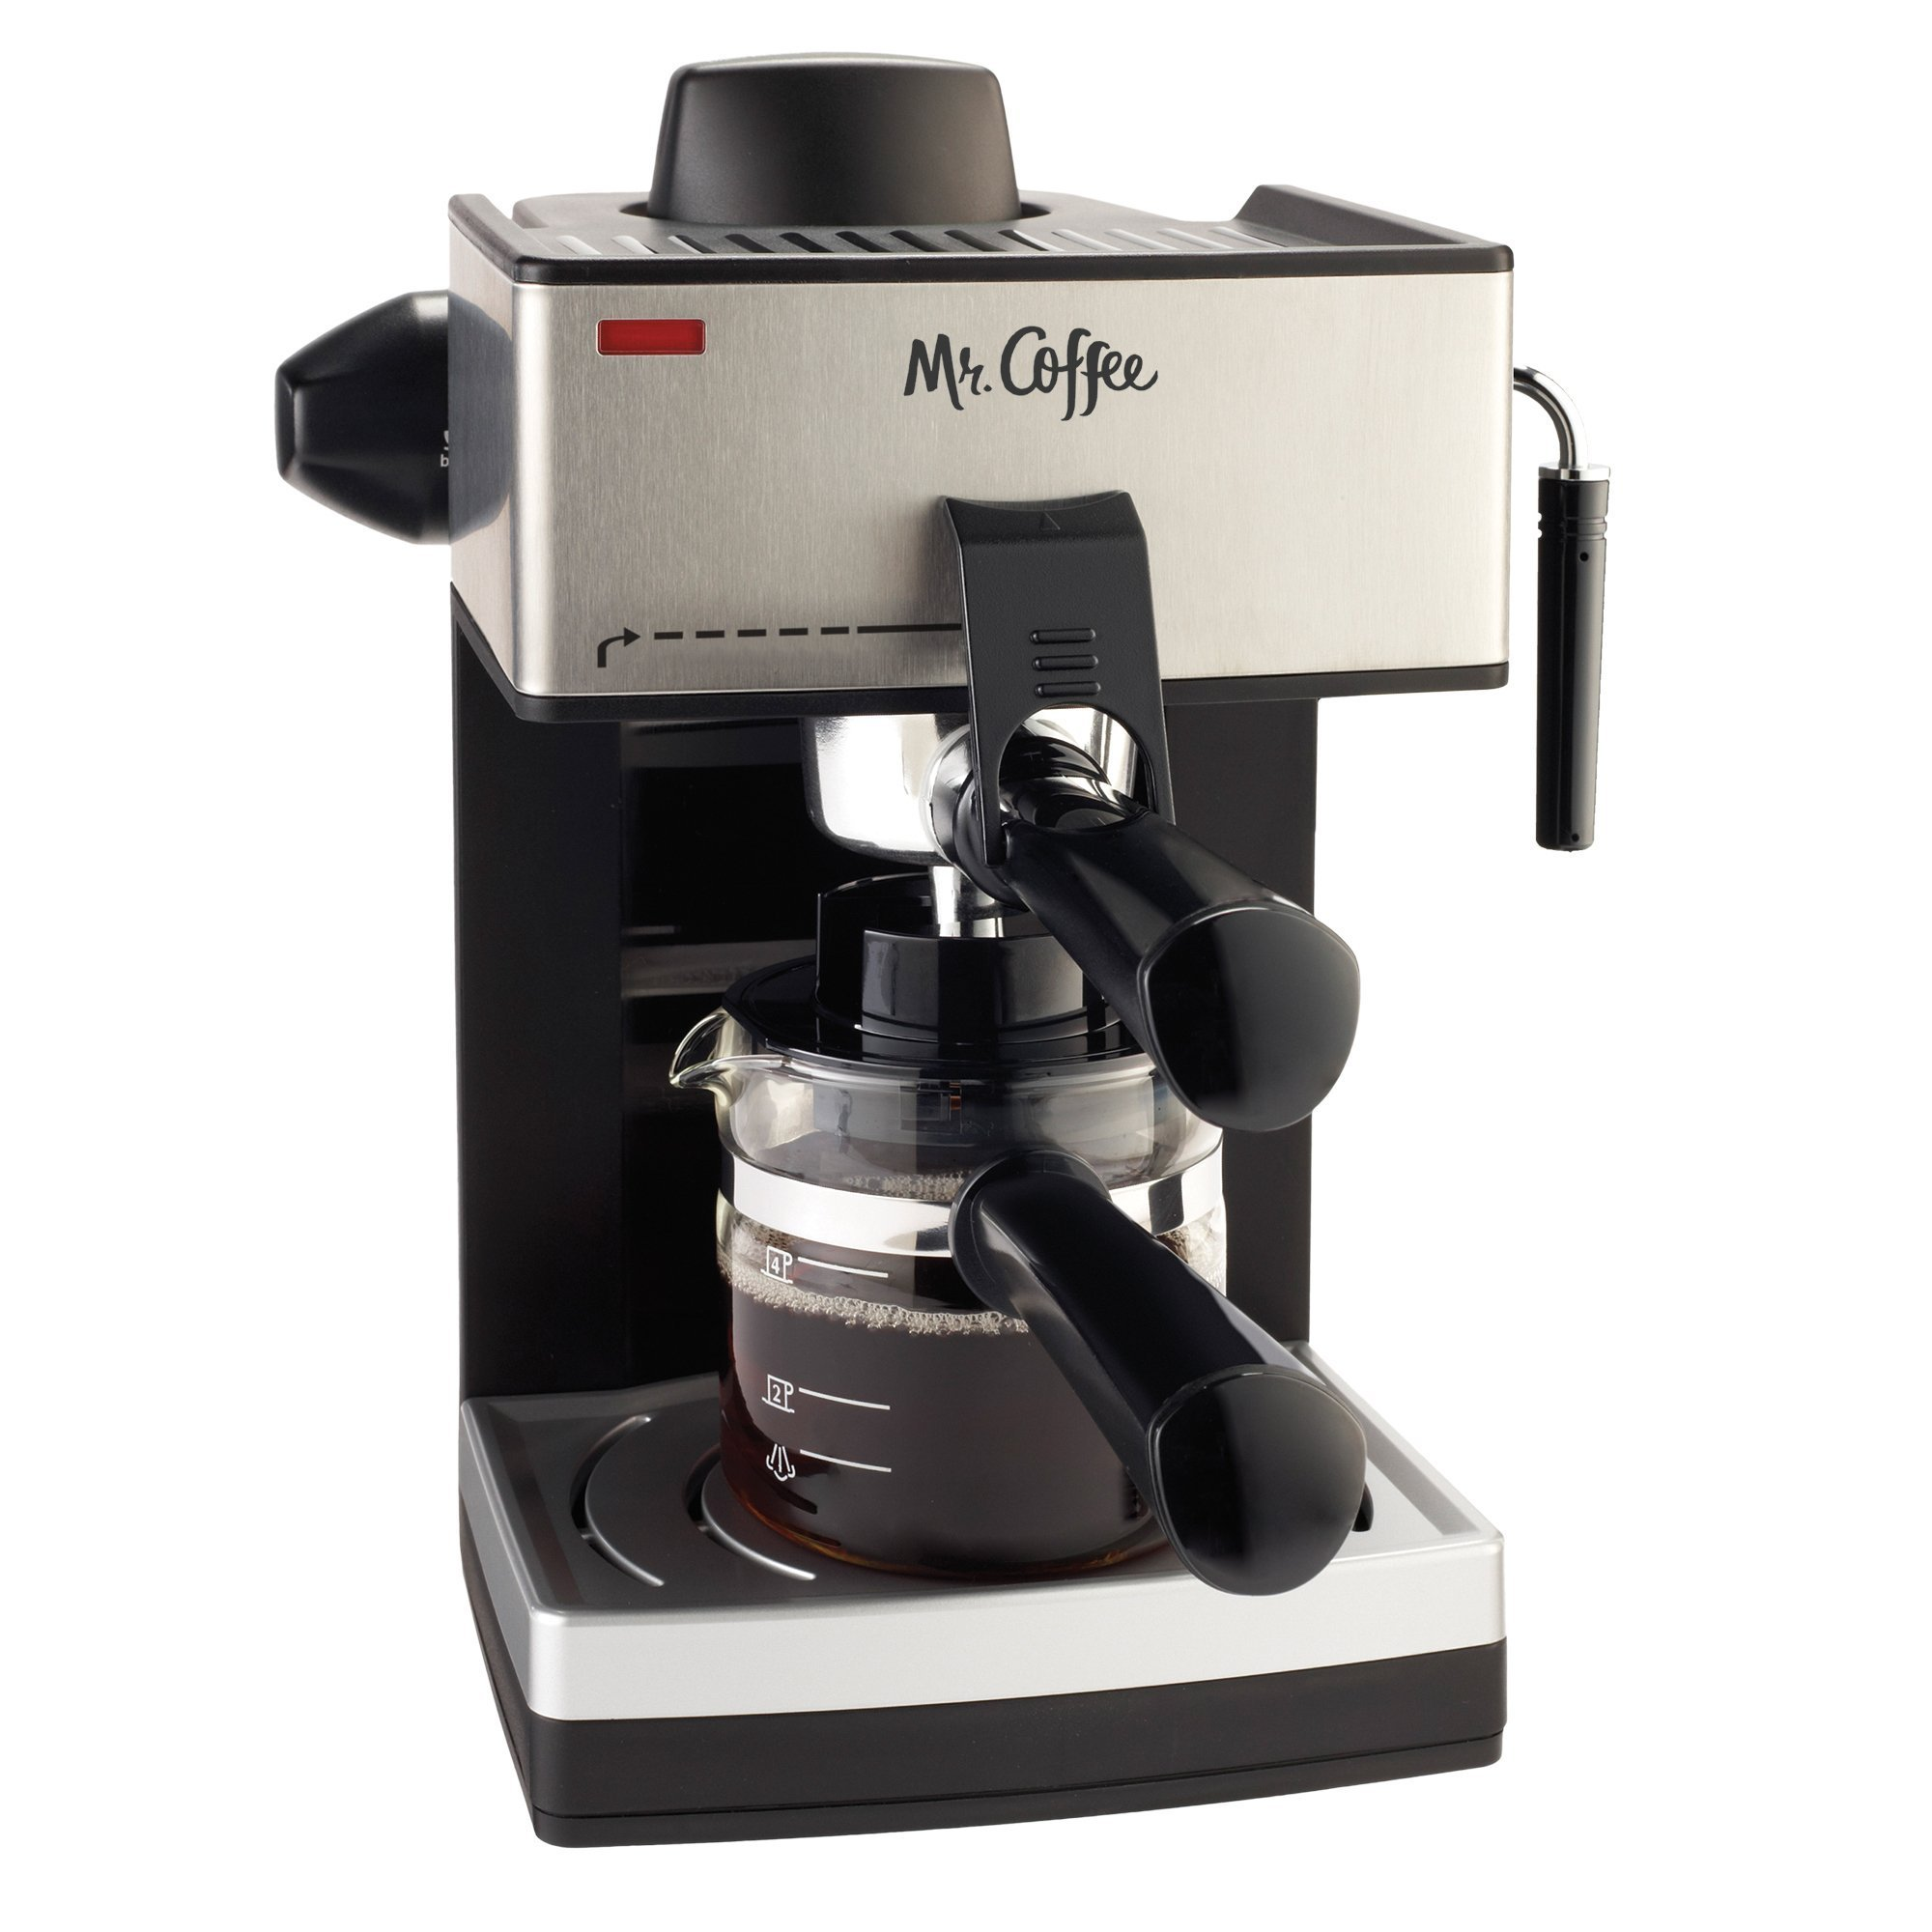 Mr. Coffee 4-Cup Steam Espresso System with Milk Frother by Mr. Coffee